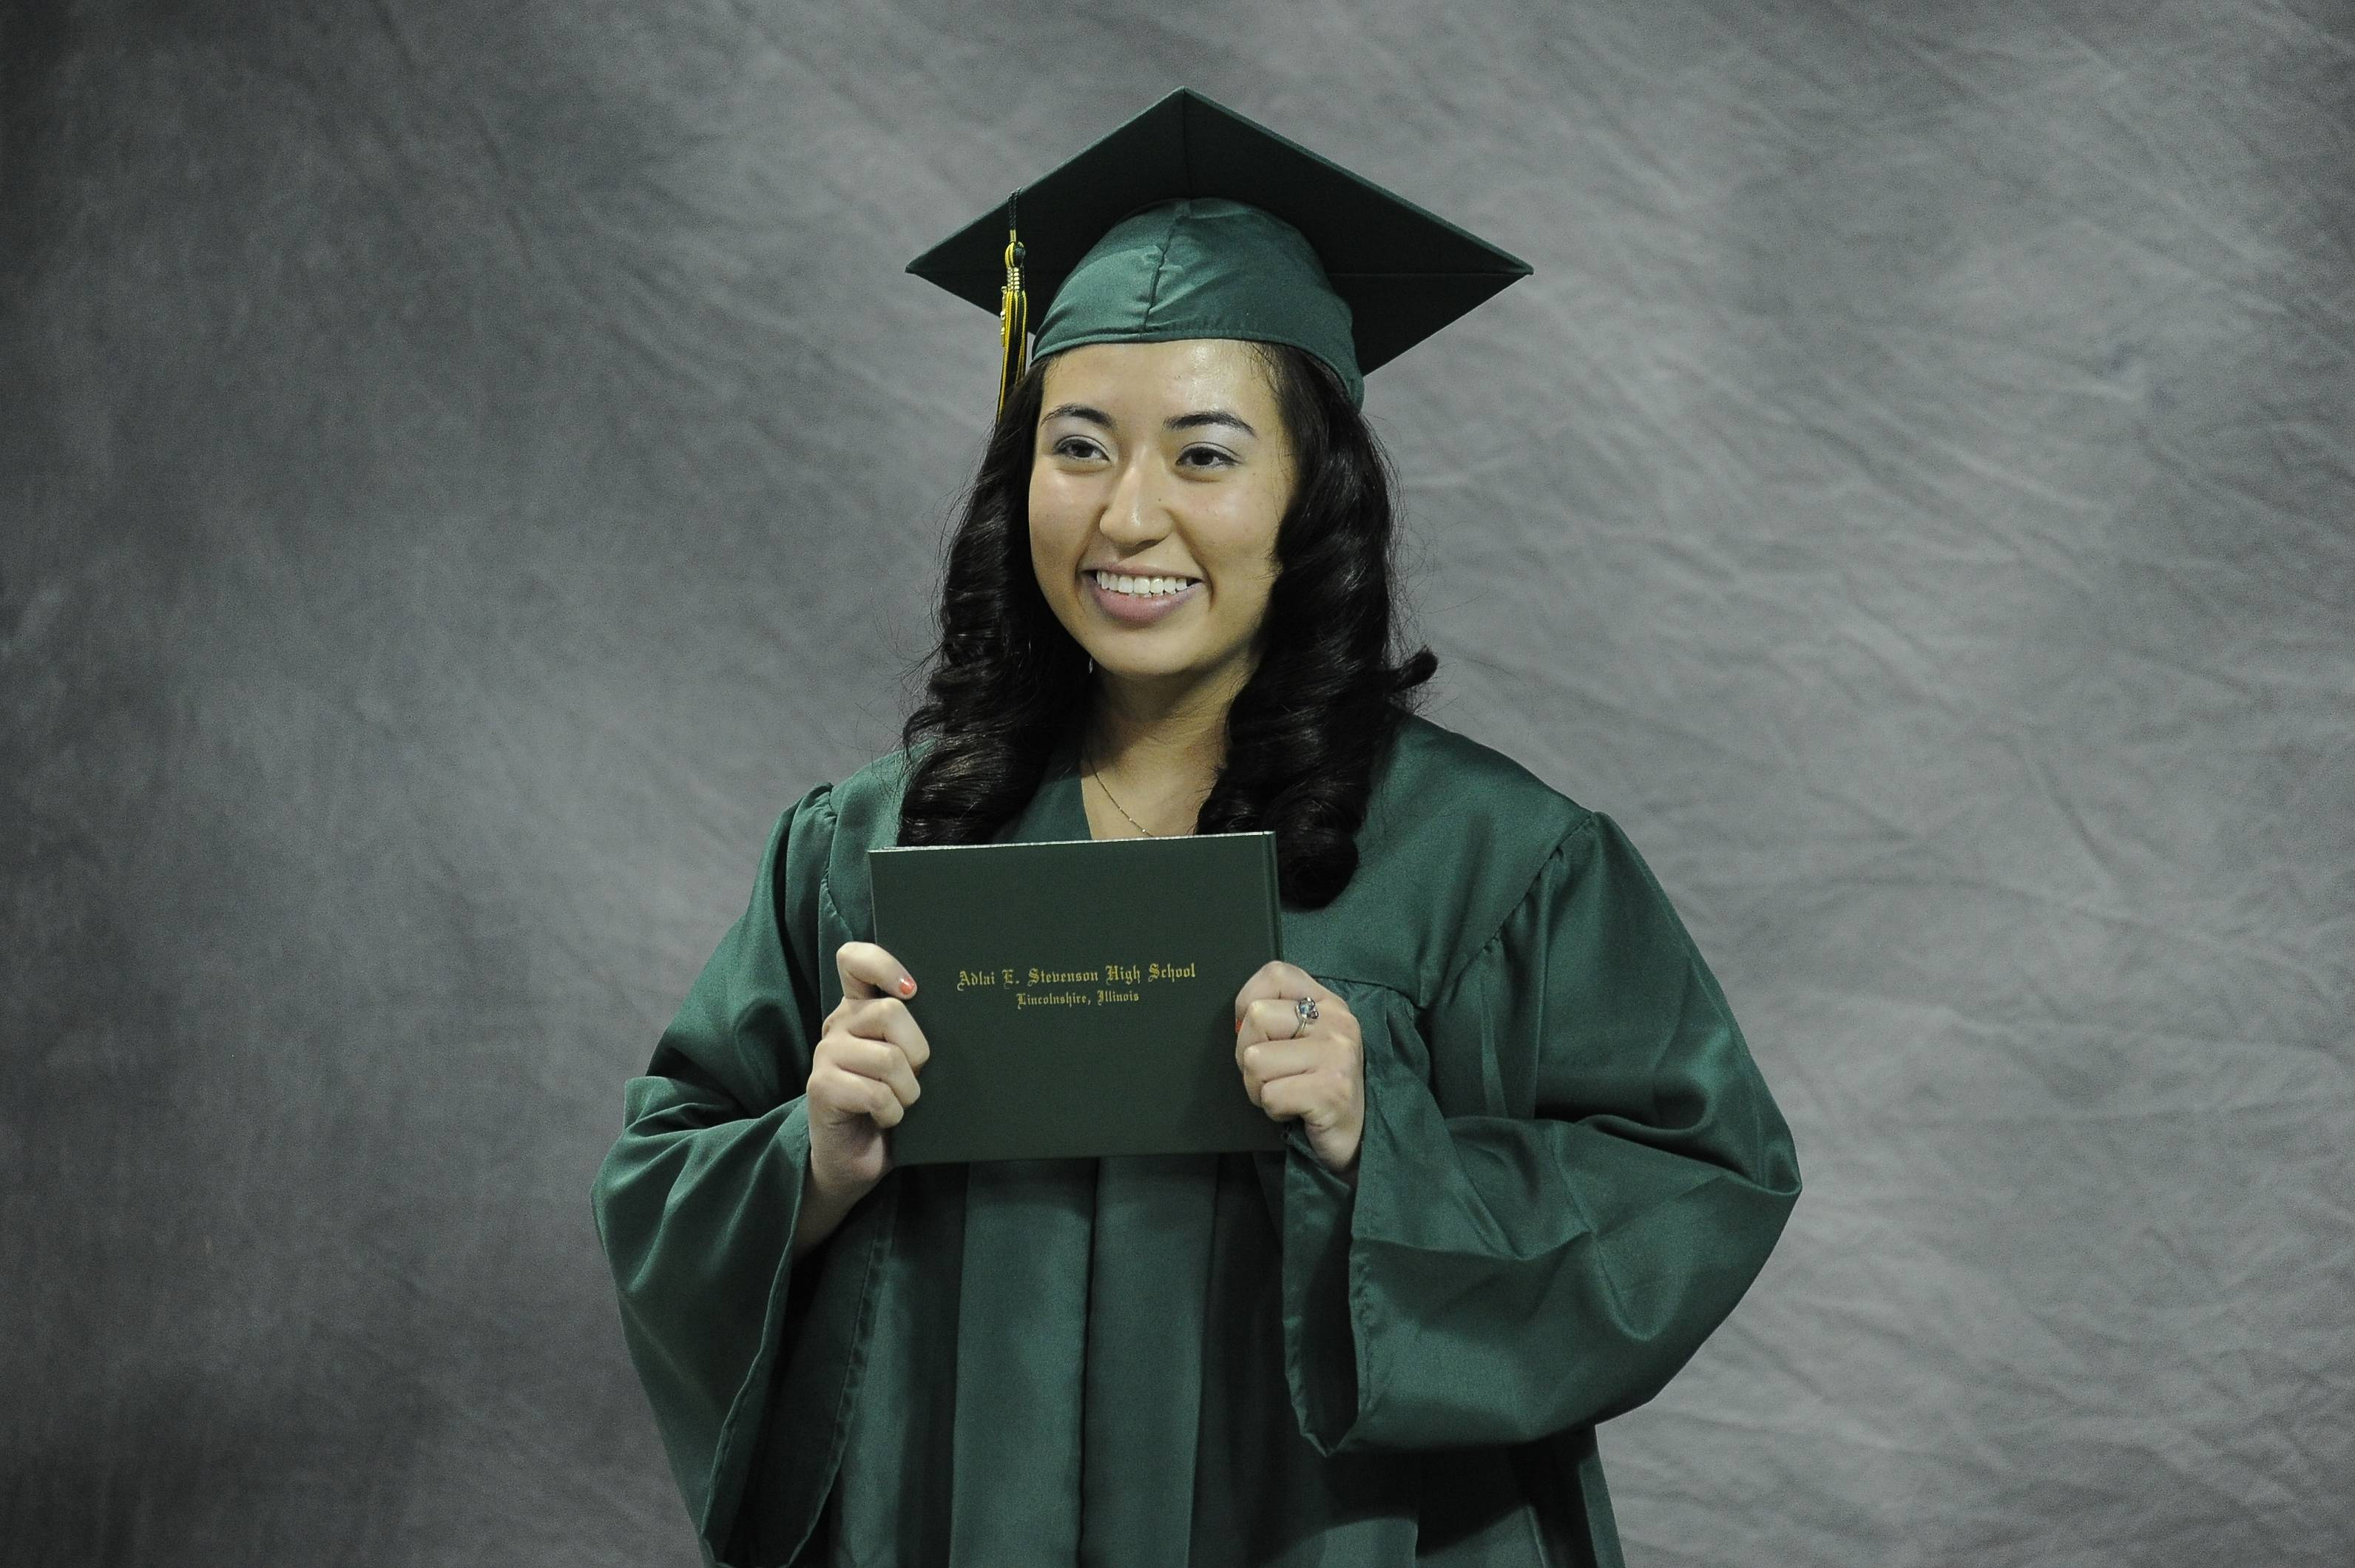 Images from the Stevenson High School graduation ceremony on Thursday, June 7 at the Sears Centre in Hoffman Estates.